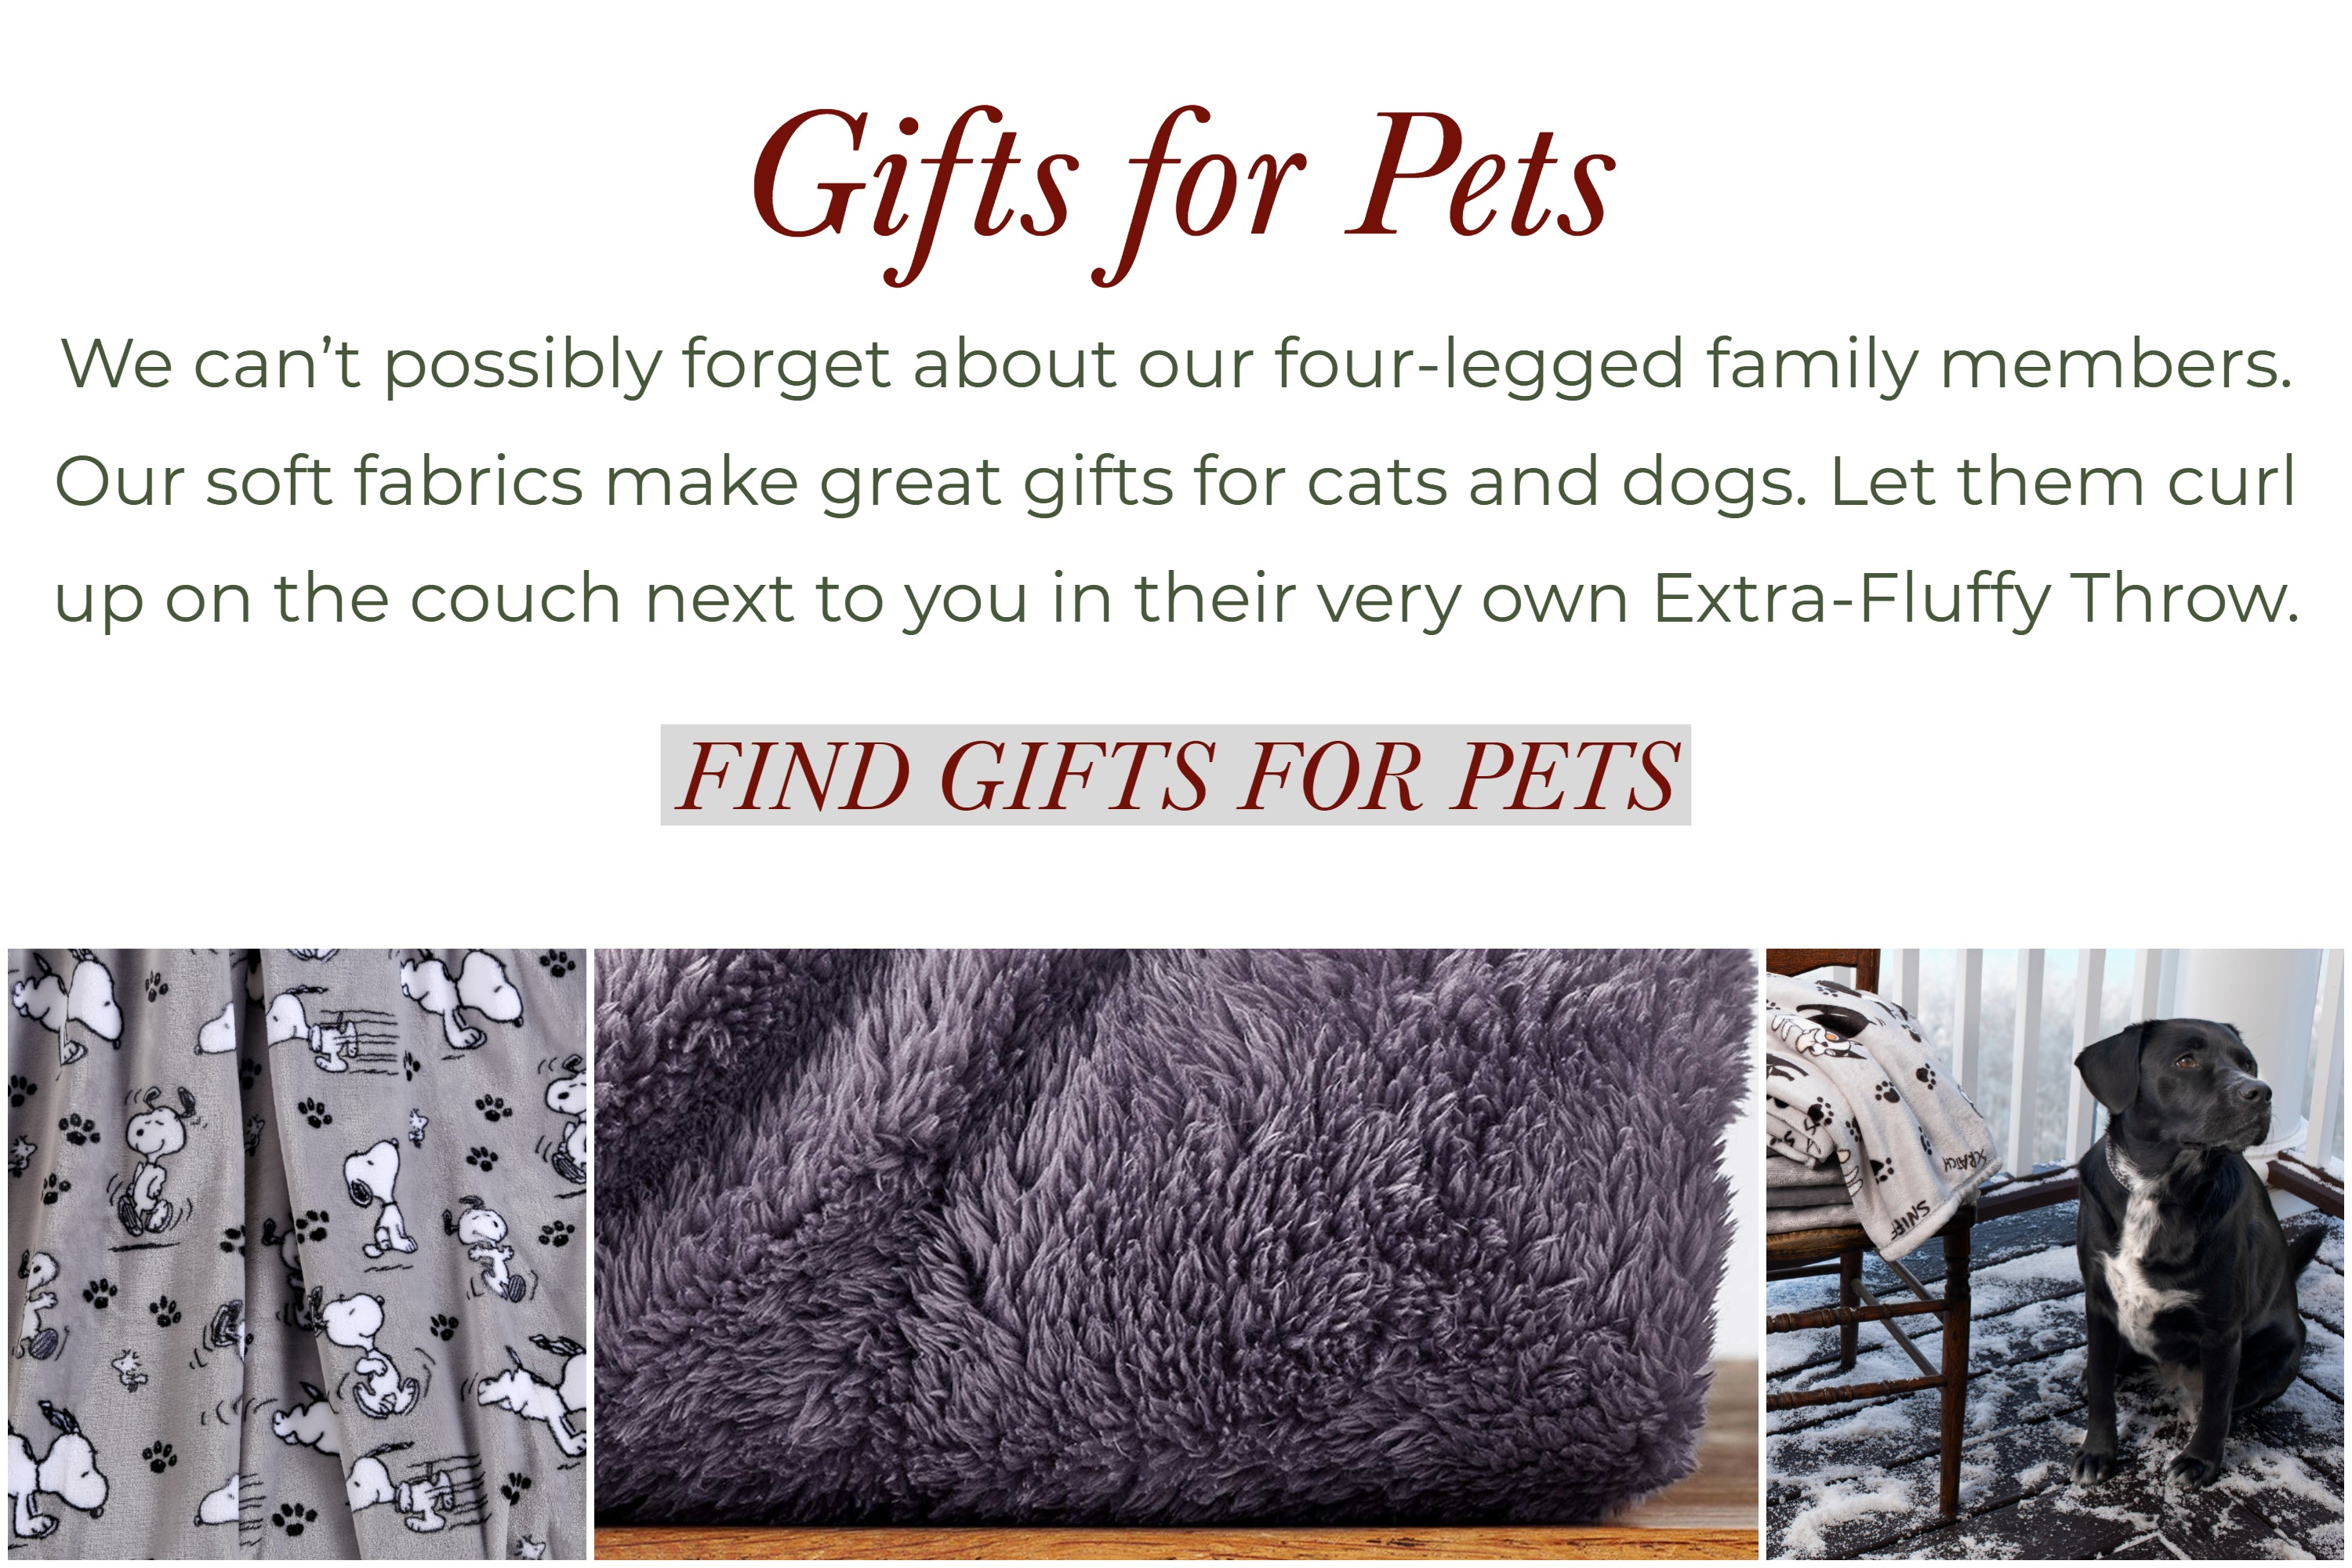 Gifts for pets. we can't possibly forget about our four-legged family members. Our softest fabrics make great gifts for cats and dogs. Let them curl up onthe couch nect to you in their very on Extra-Fluffy Throw.